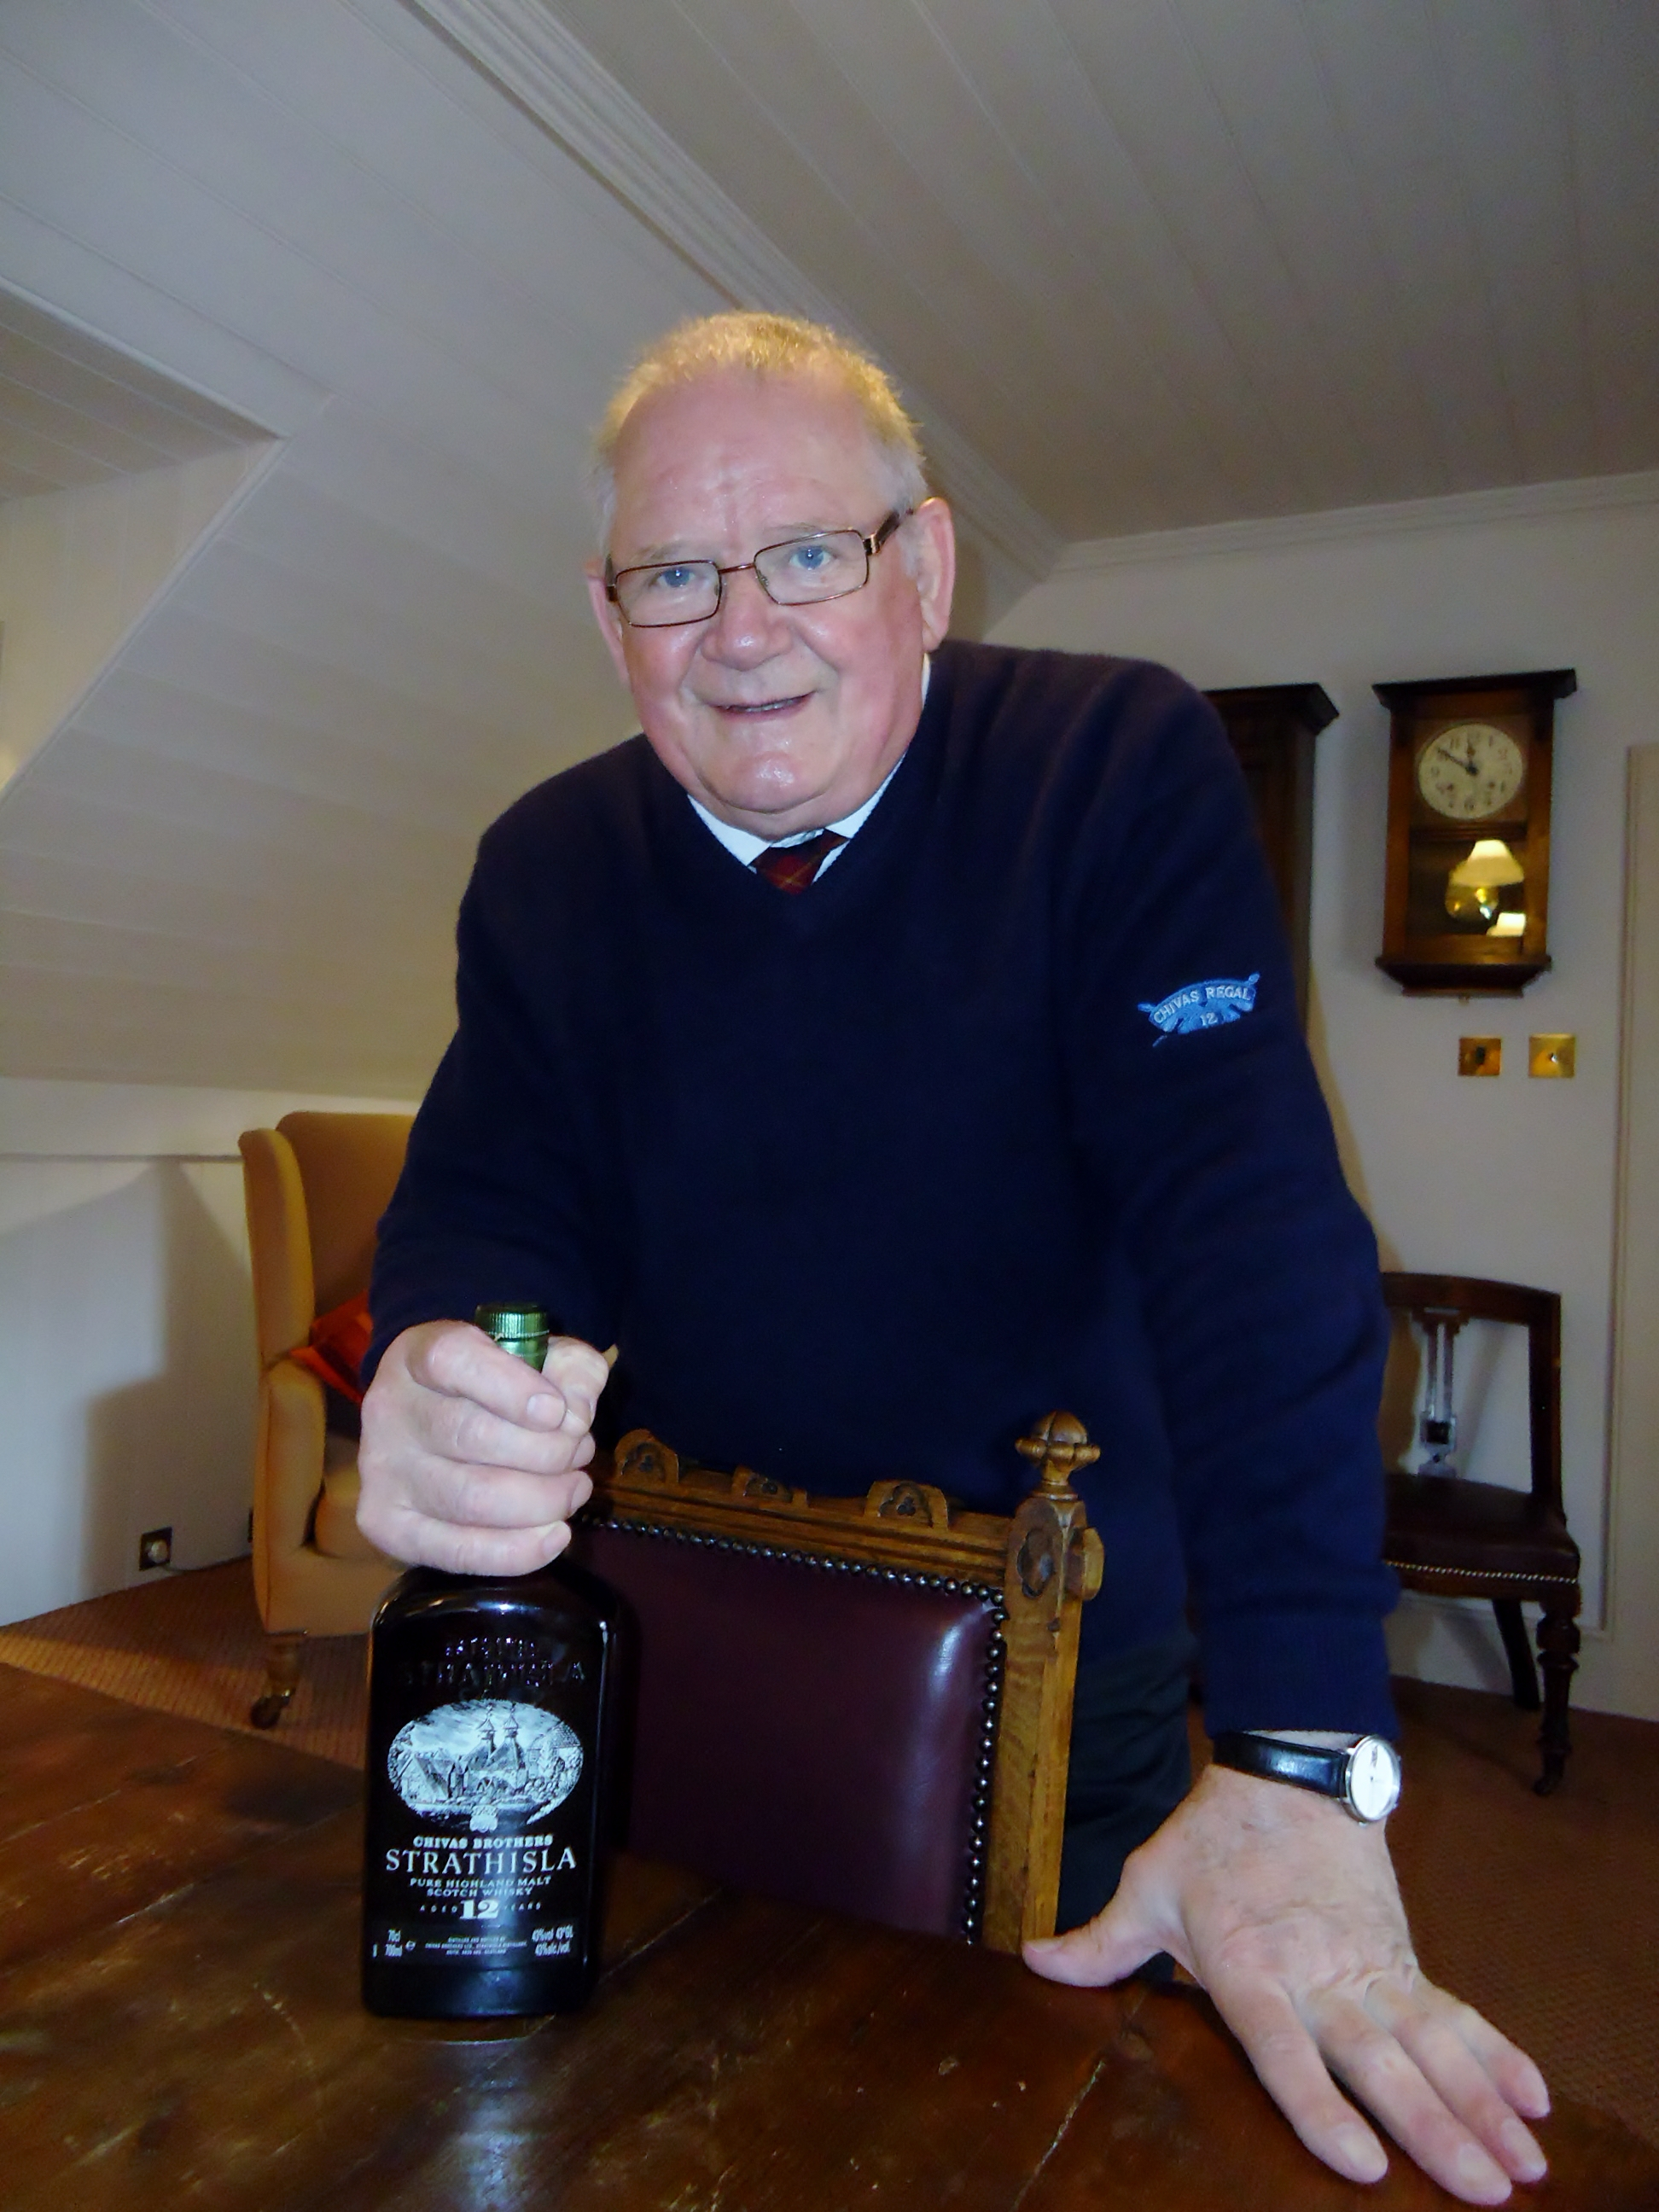 The legendary Tommy at the Strathisla Distillery in Scotland.